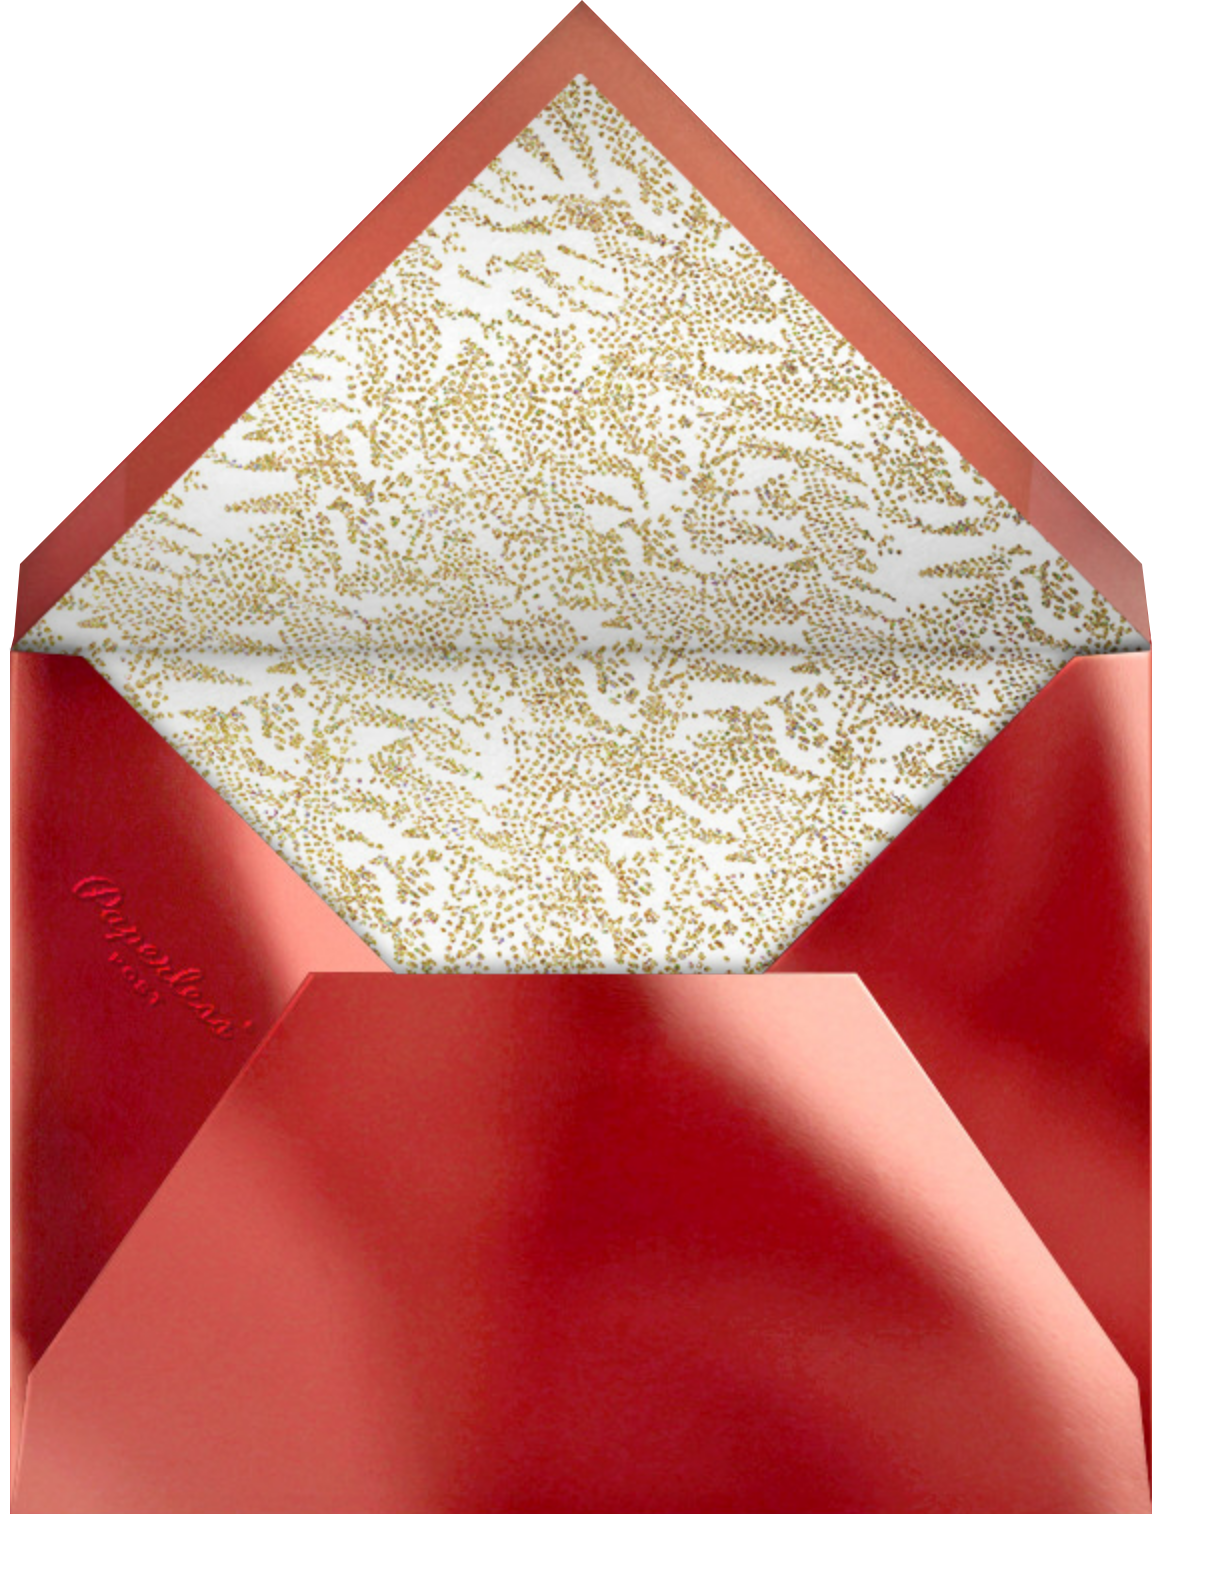 Crystal Pines Christmas (Greeting) - Gold - Paperless Post - Christmas - envelope back